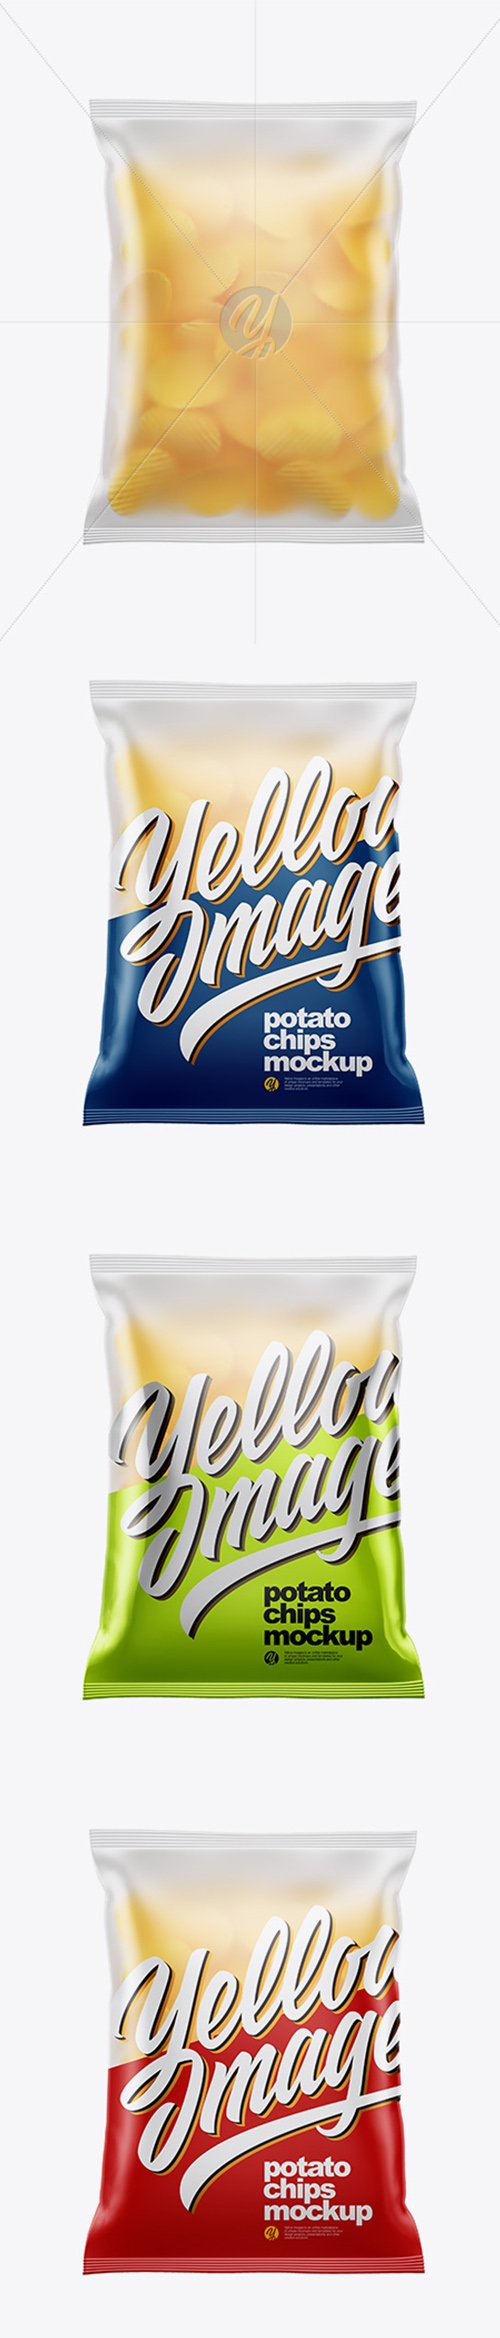 Frosted Bag With Corrugated Potato Chips Mockup 38548 TIF